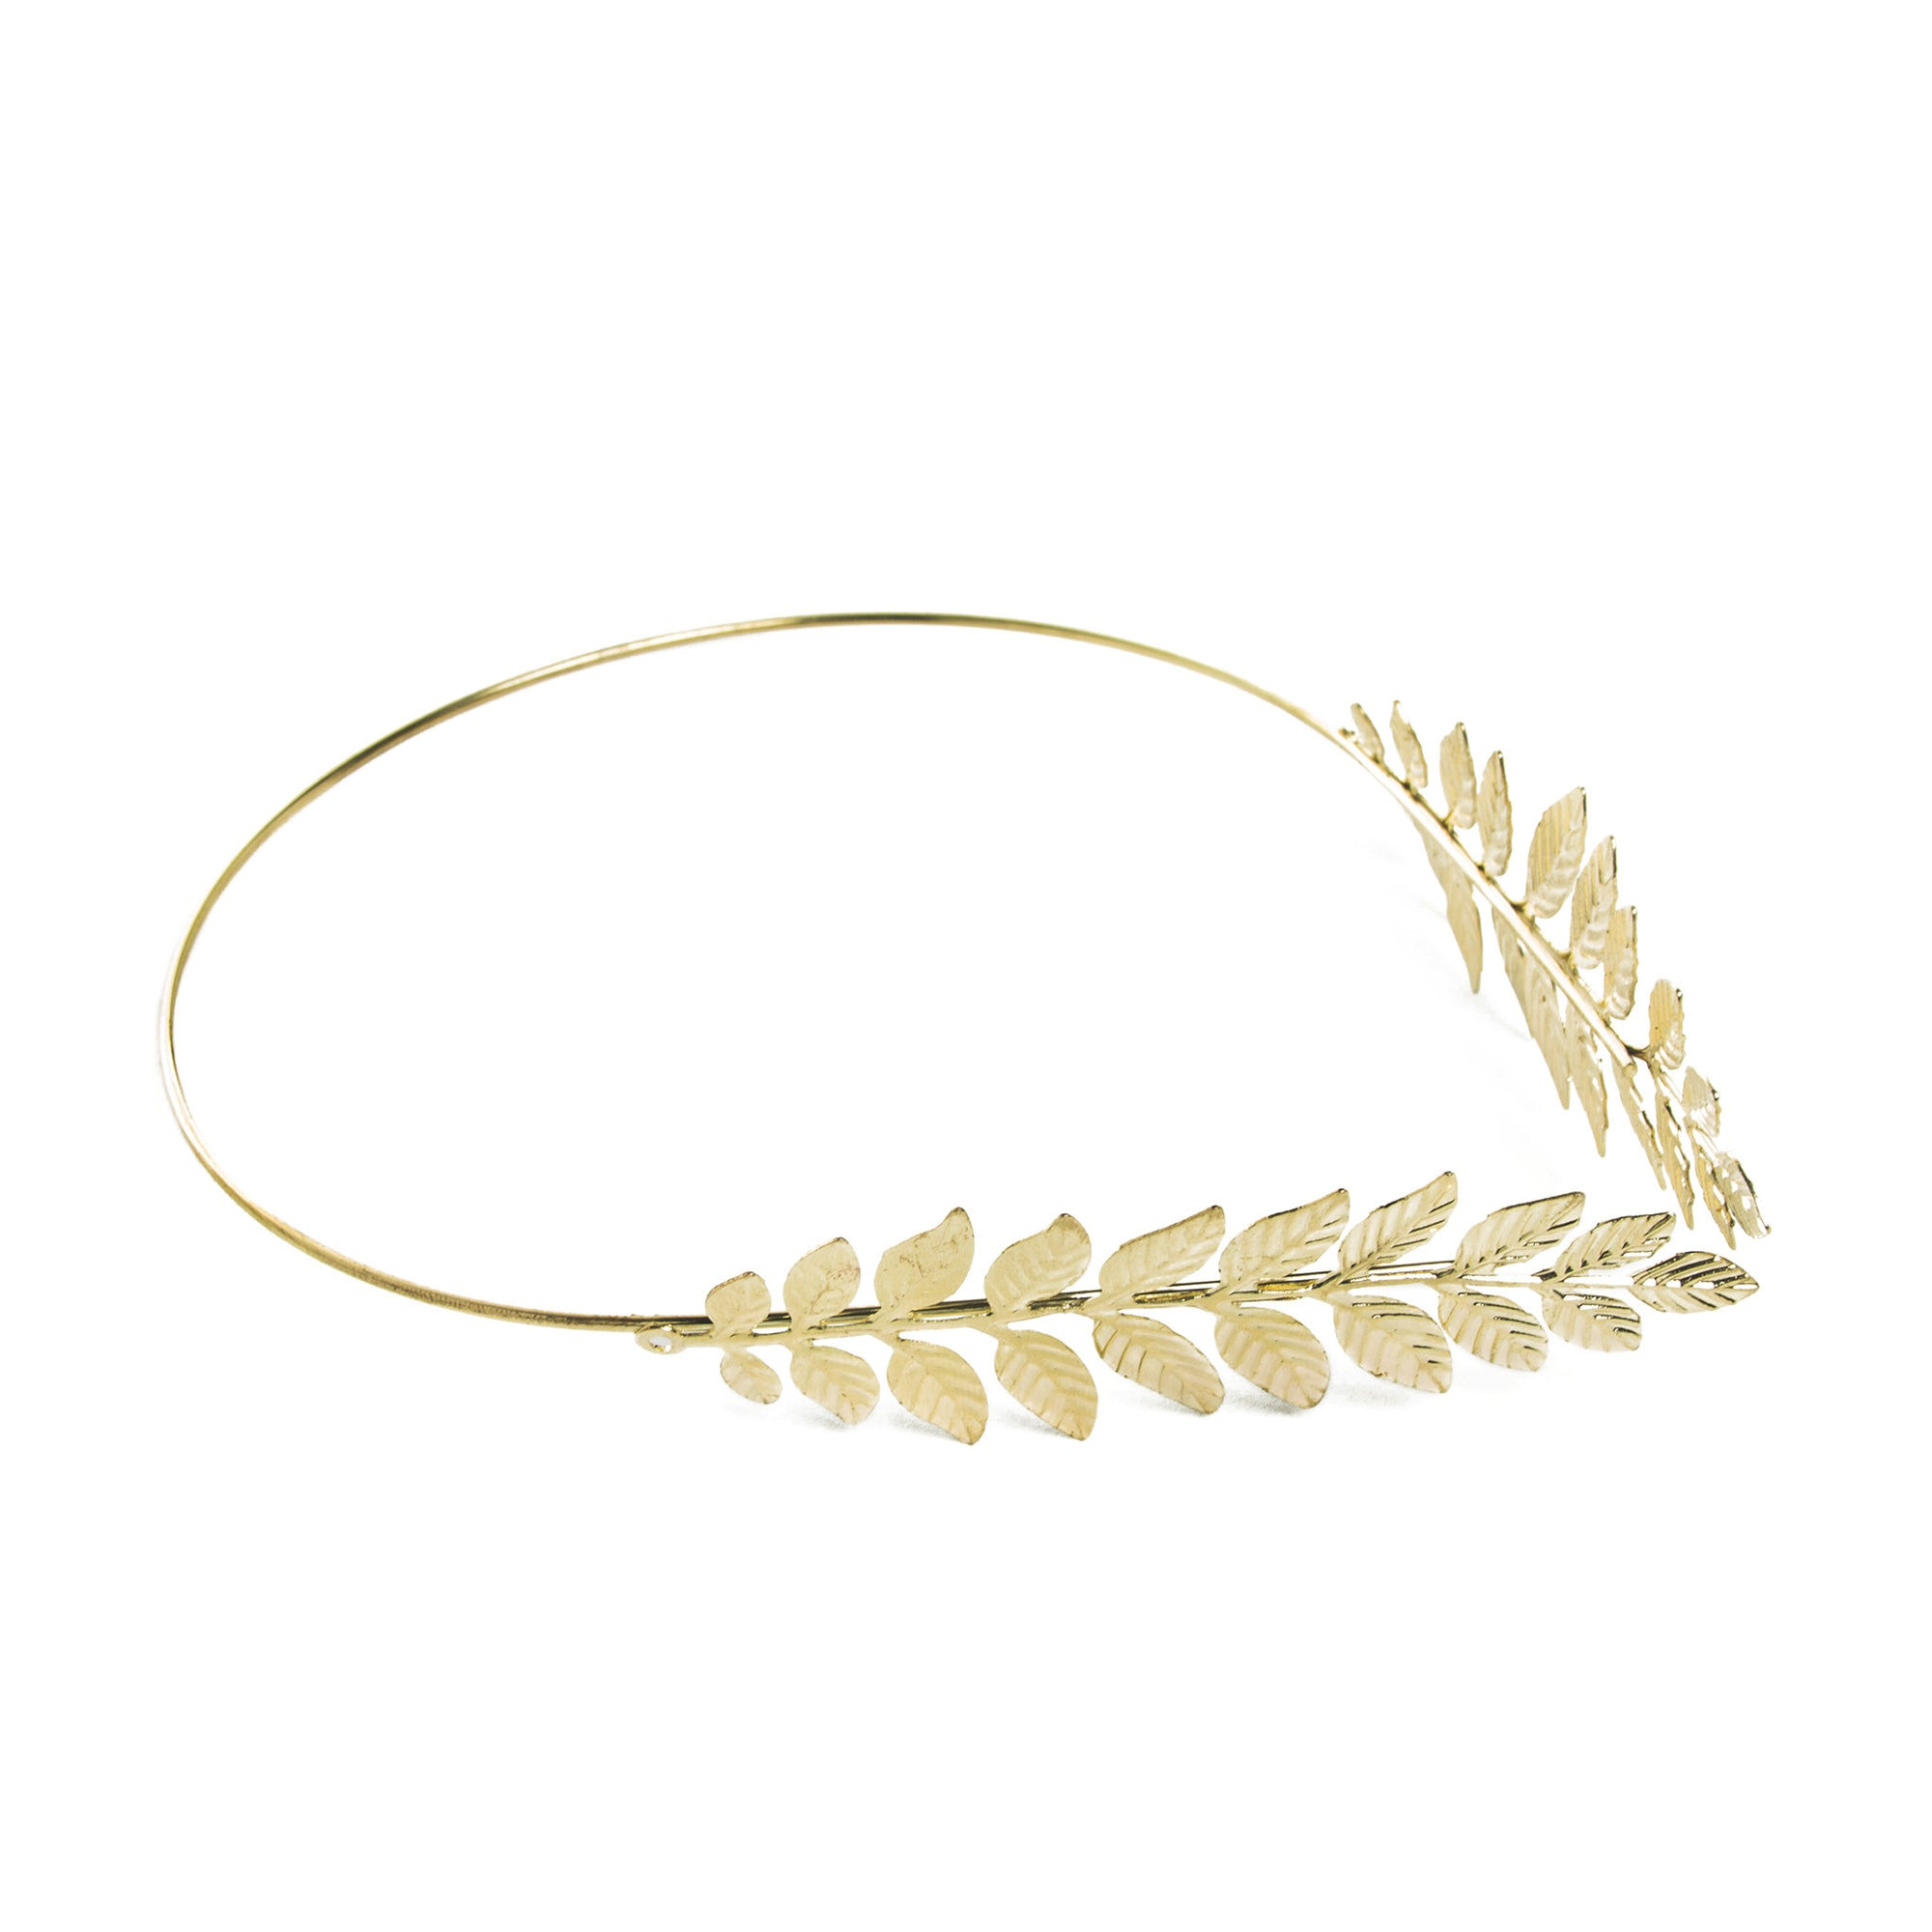 Myrtle Branch Wreath Headband | Getty Store